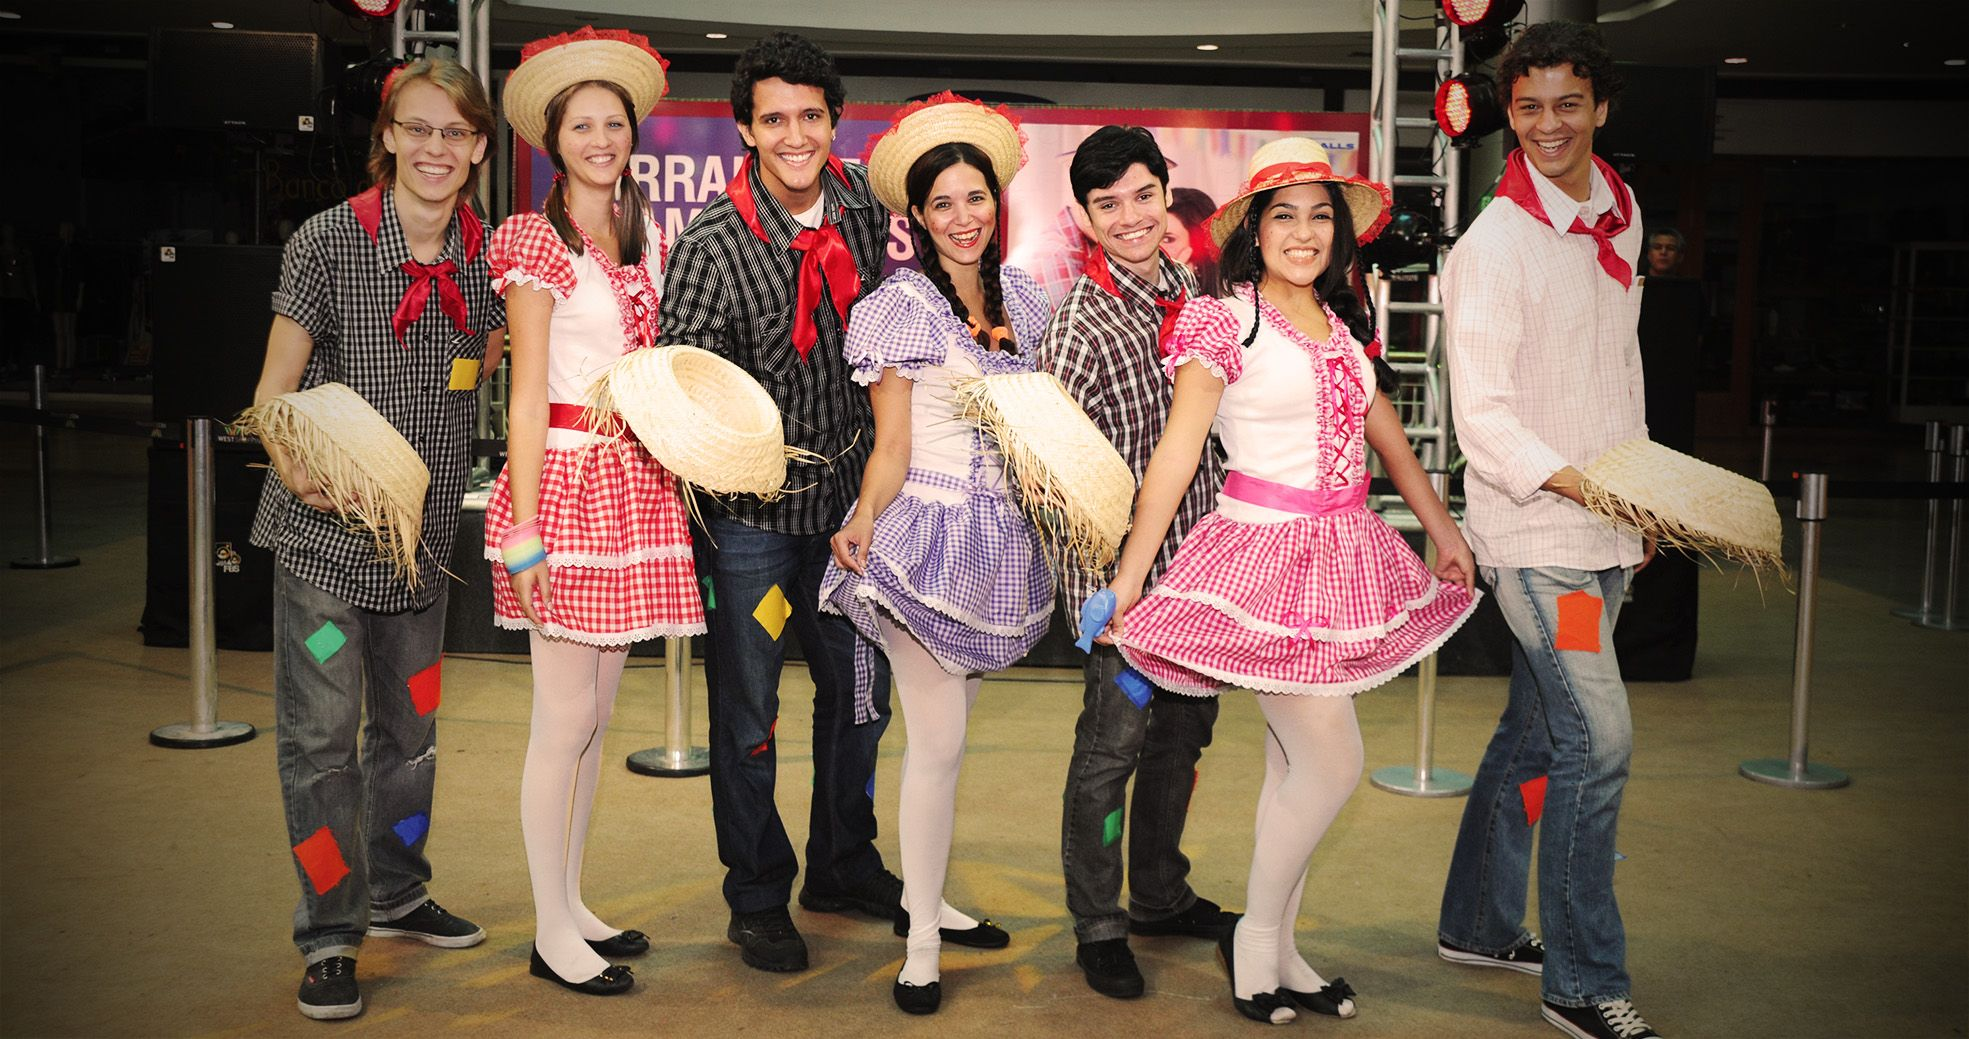 Produção de Evento - Festa Junina West-Shopping - Agência DosReis Live Marketing